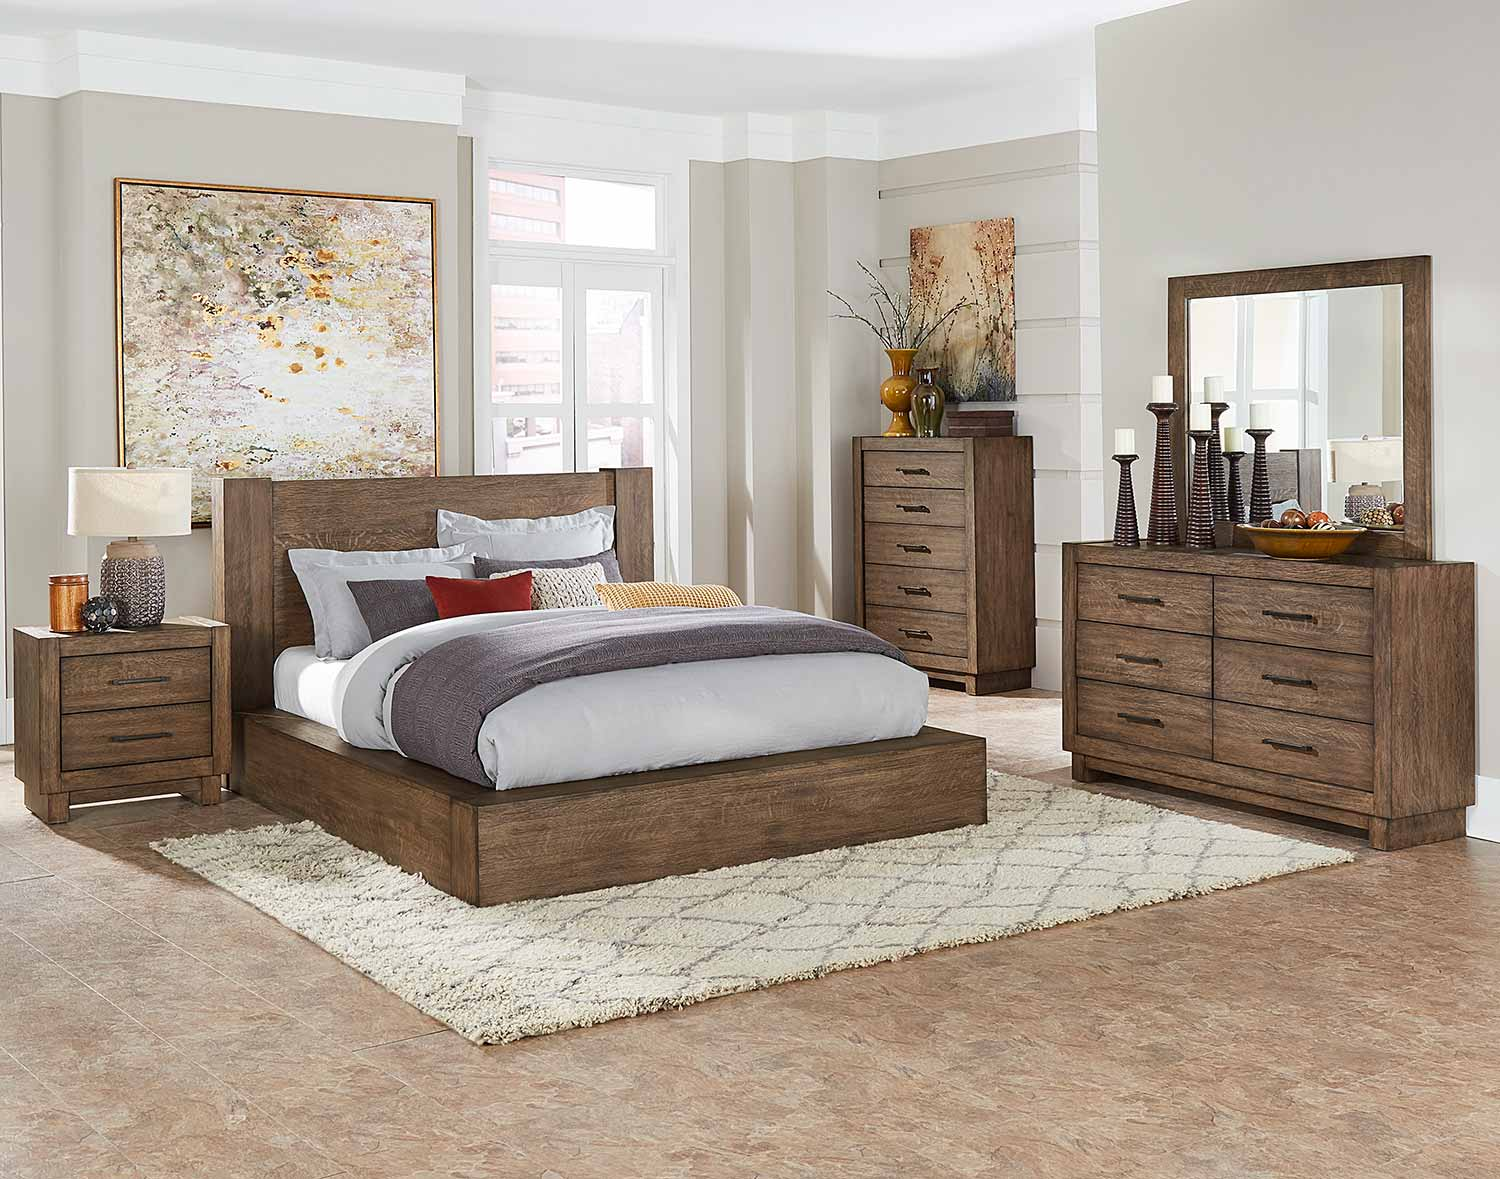 Homelegance Korlan Platform Bedroom Set - Brown Oak